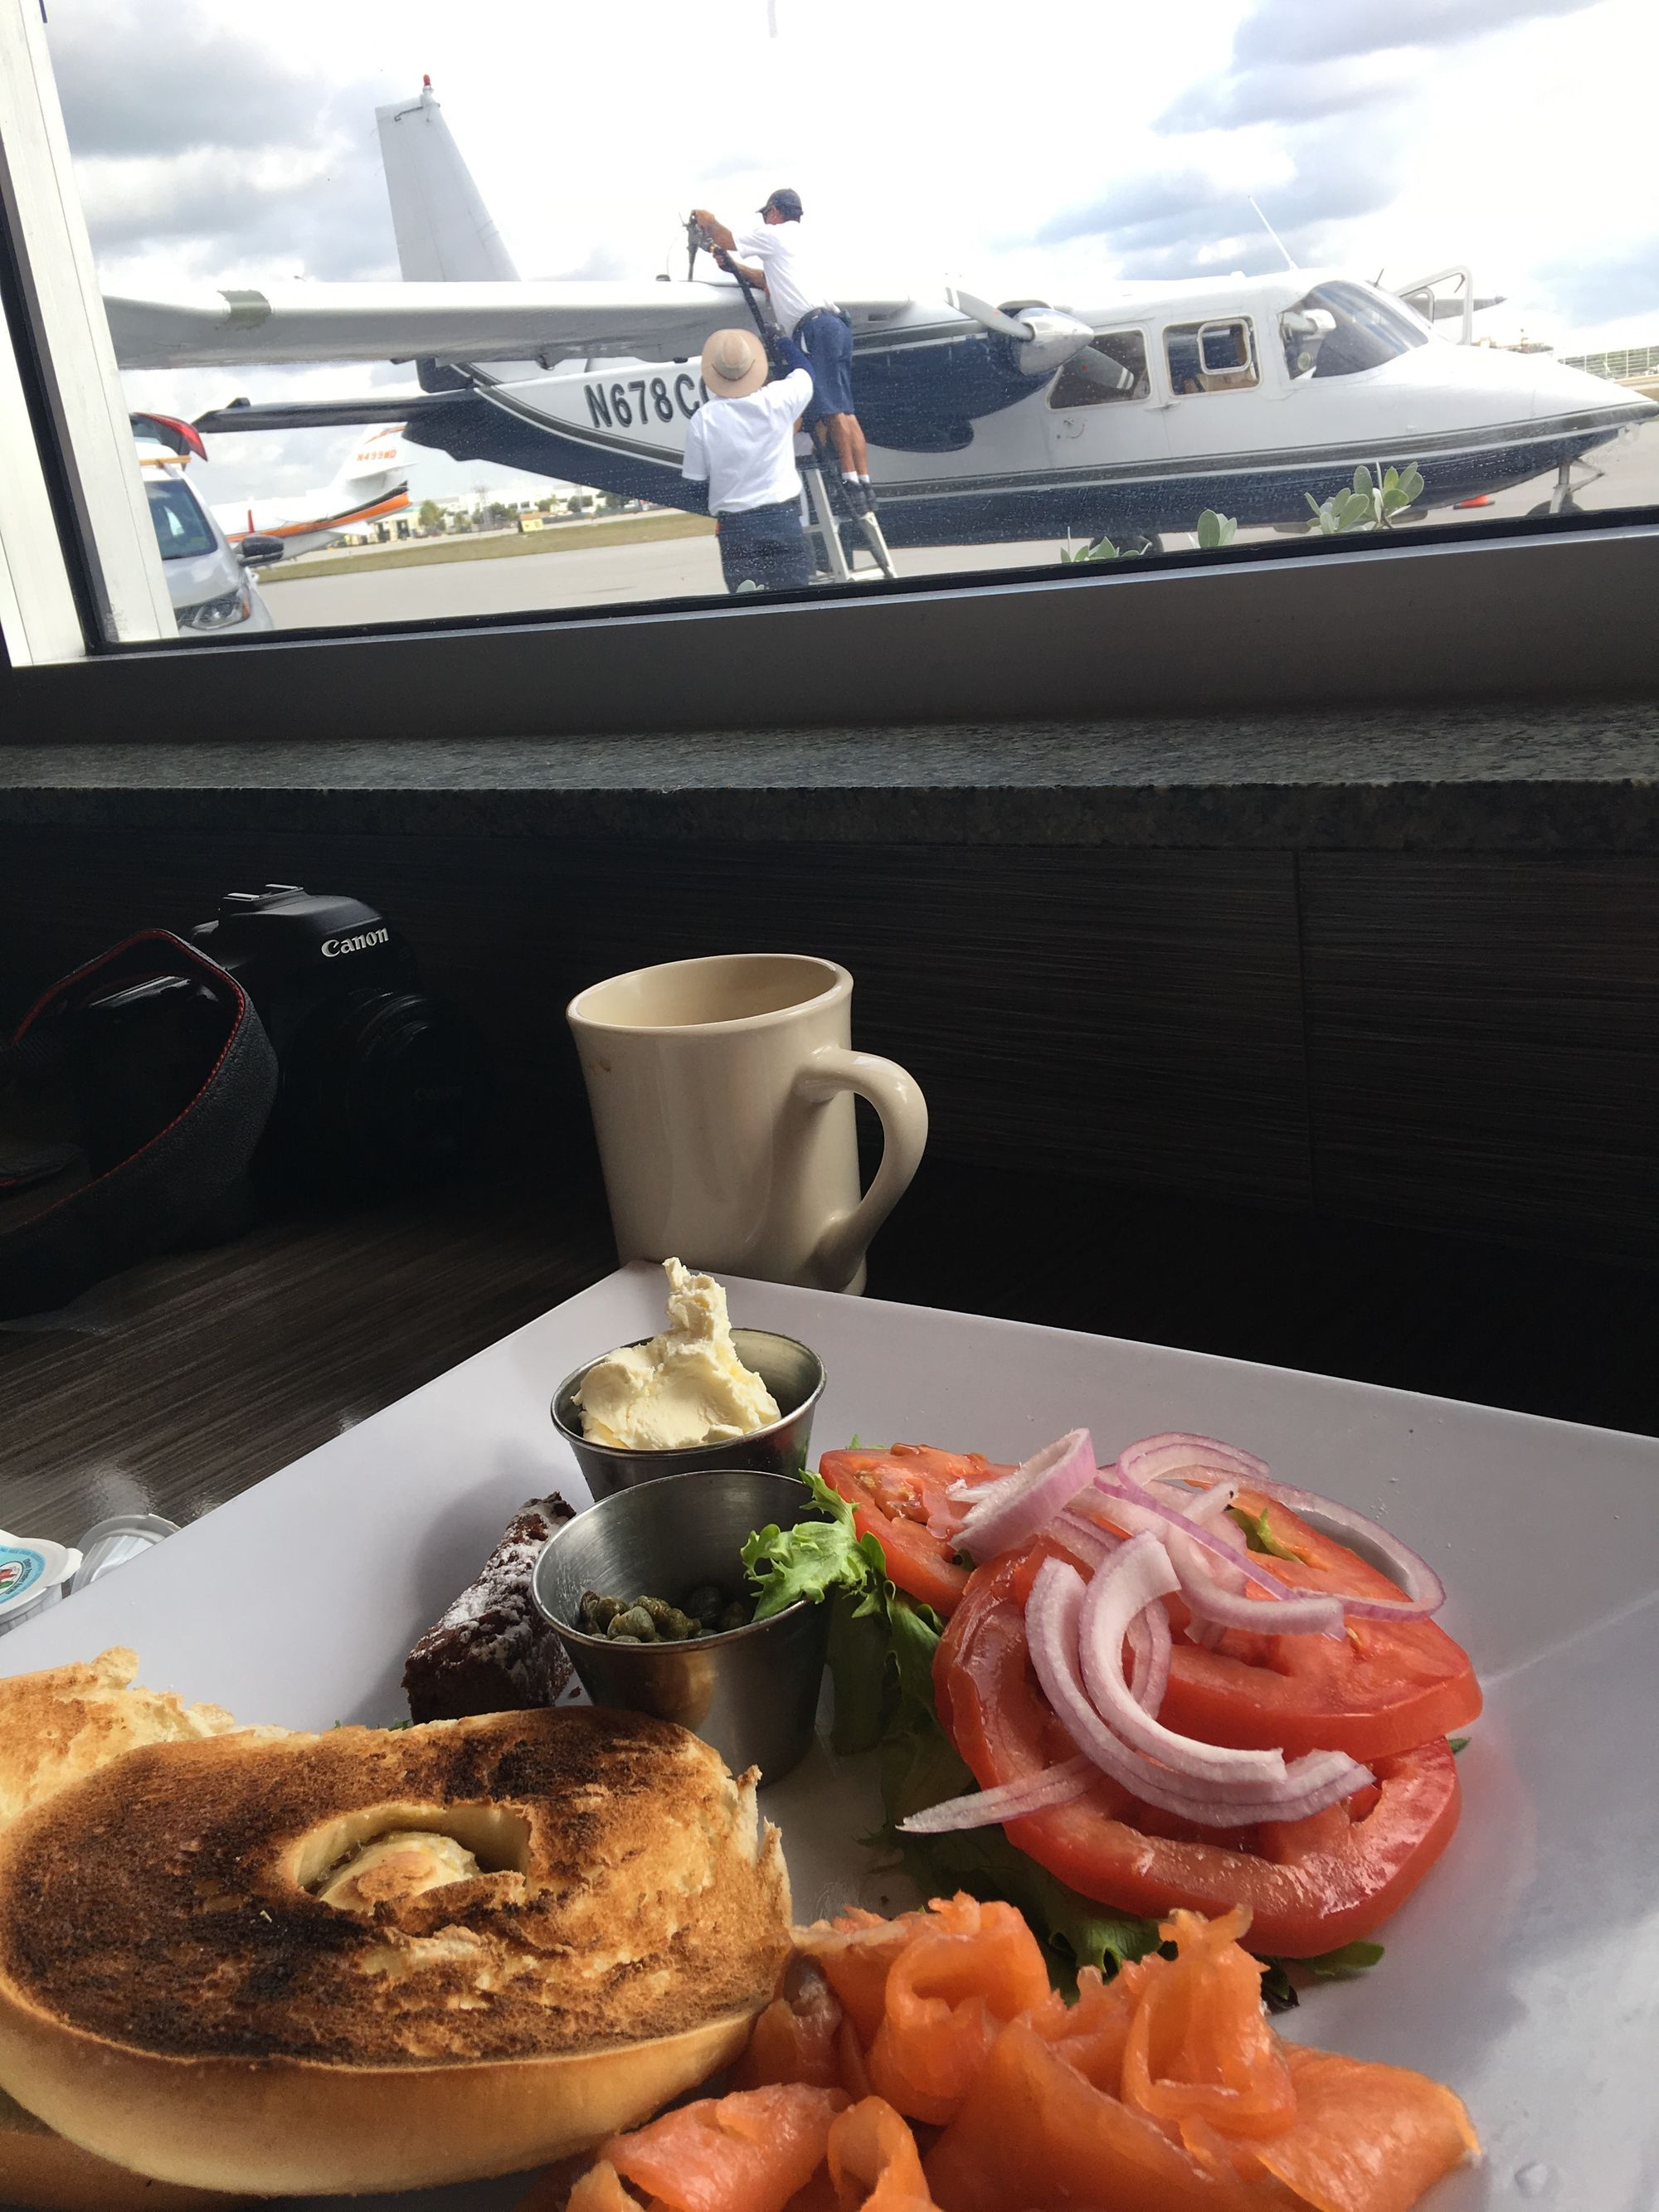 An image of a plate of food while an airplane fuels in the background.